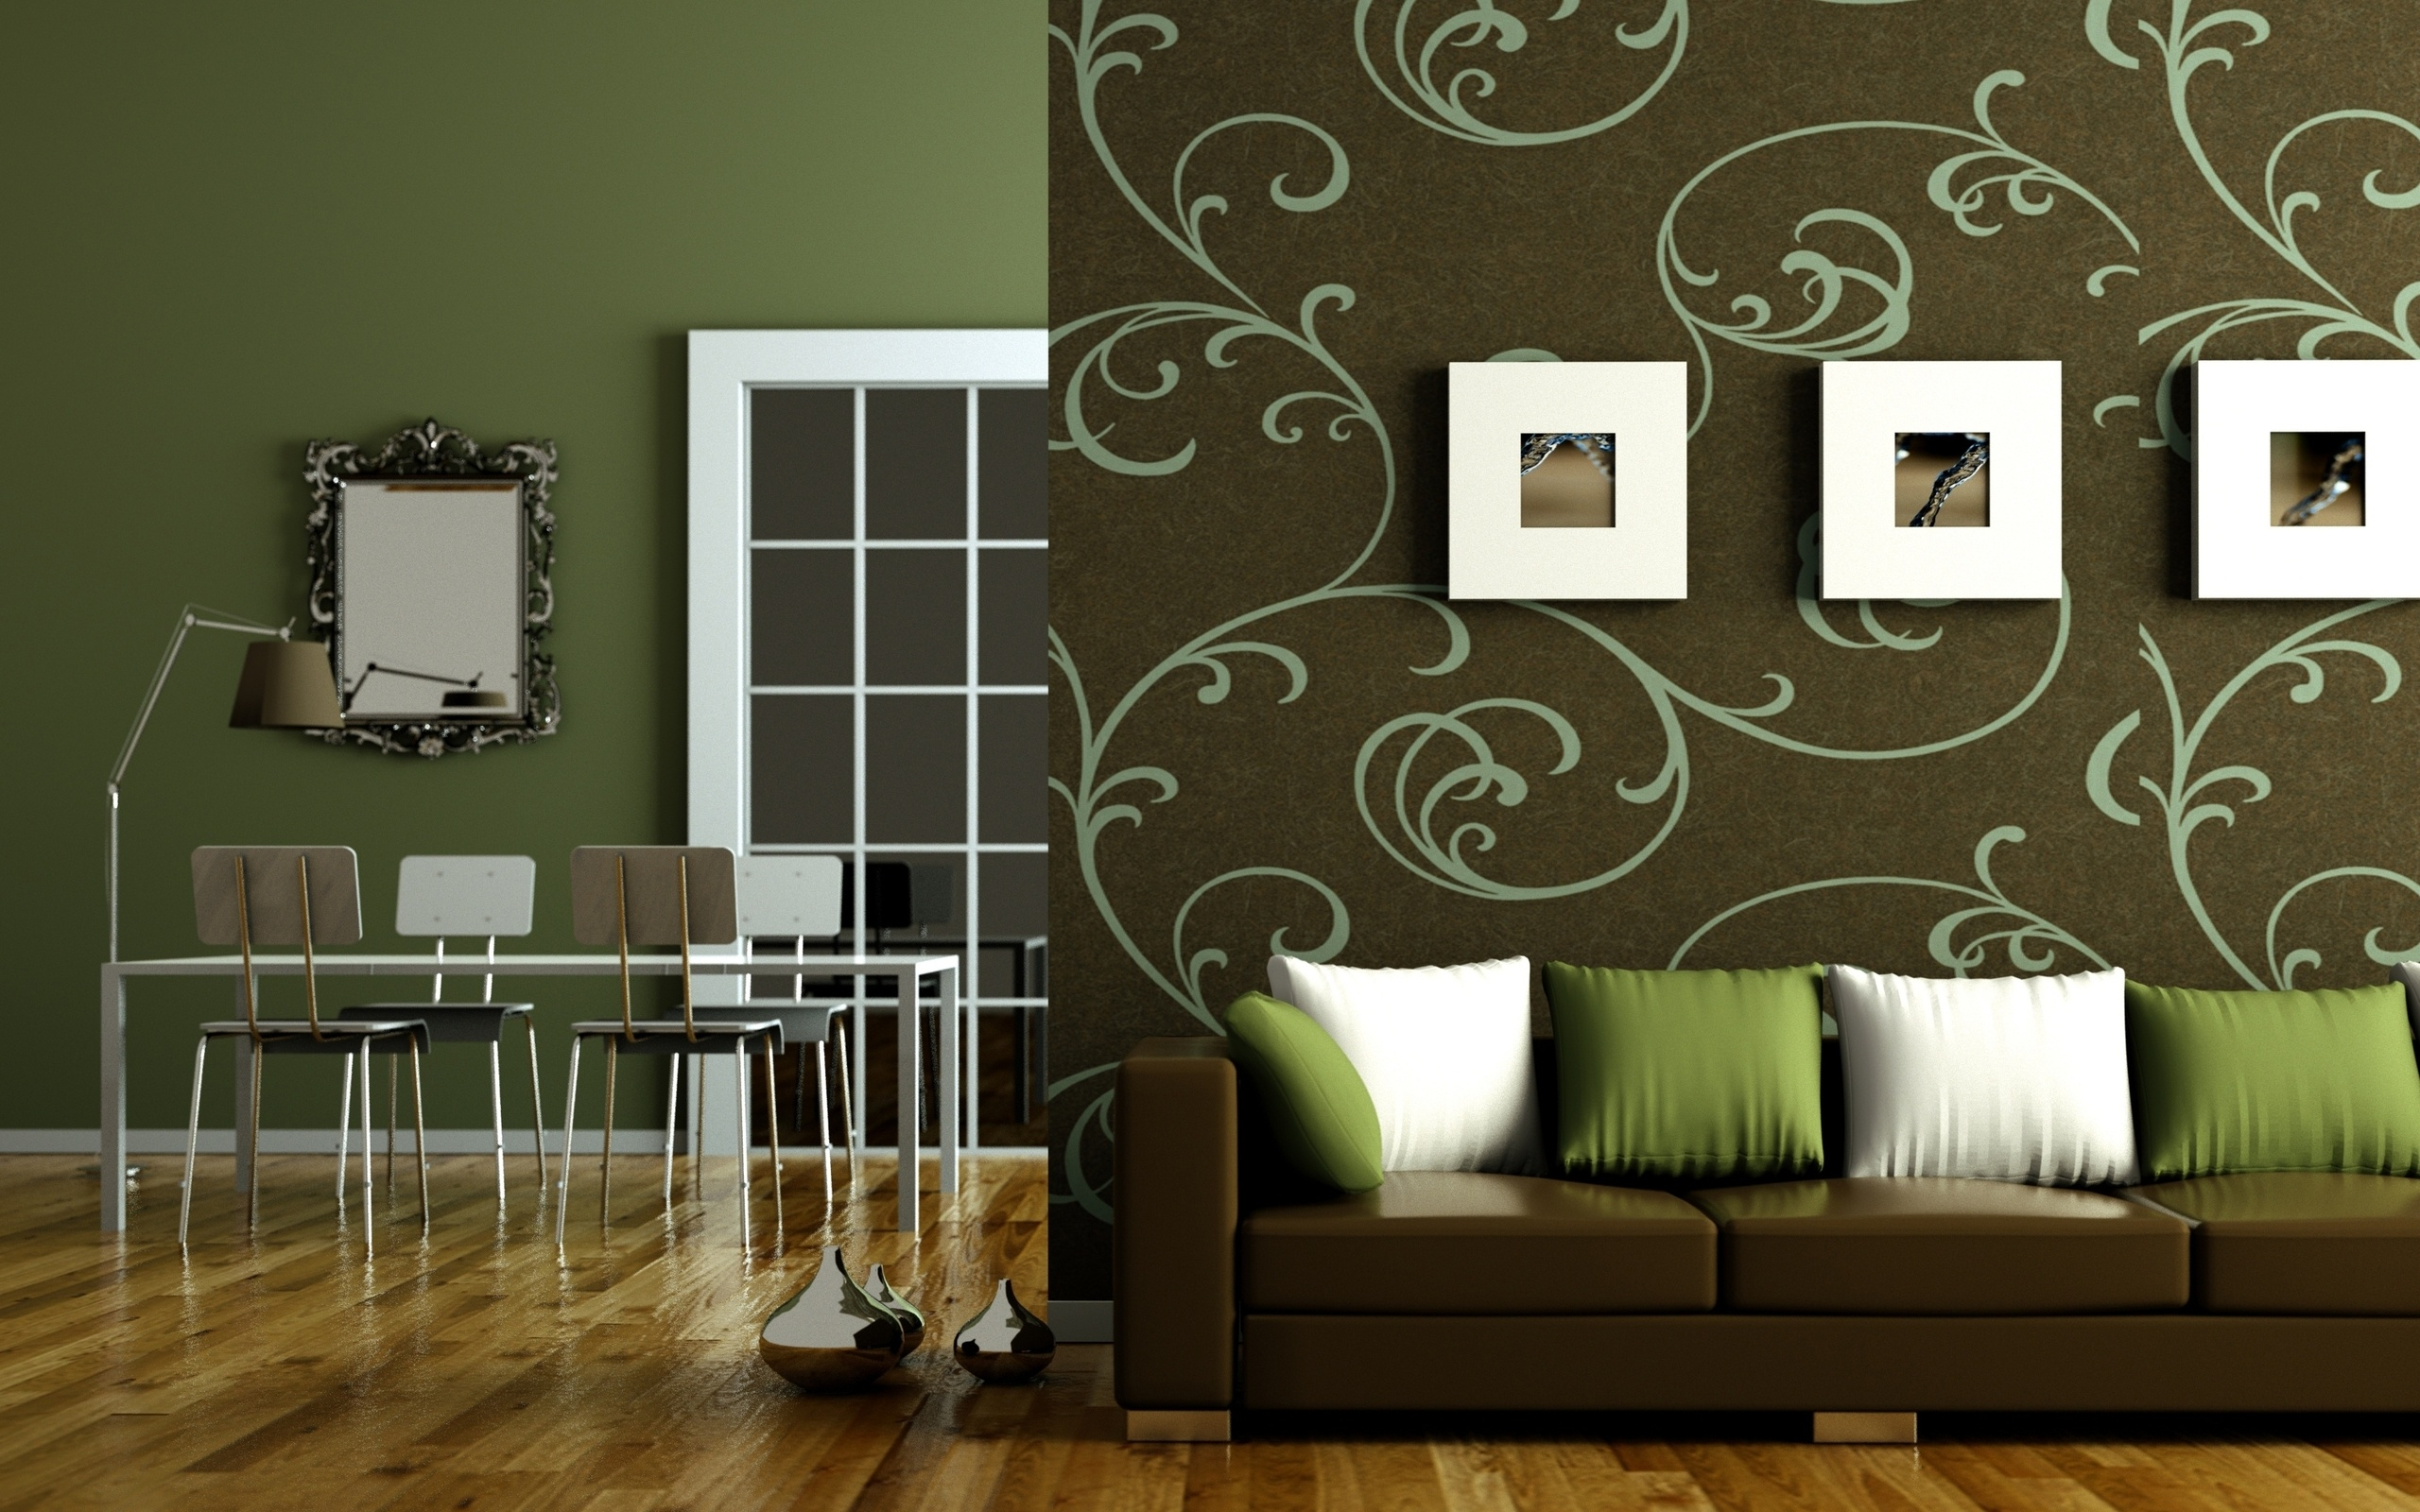 Outstanding Green and Brown Living Room Decorating Ideas 2560 x 1600 · 1096 kB · jpeg